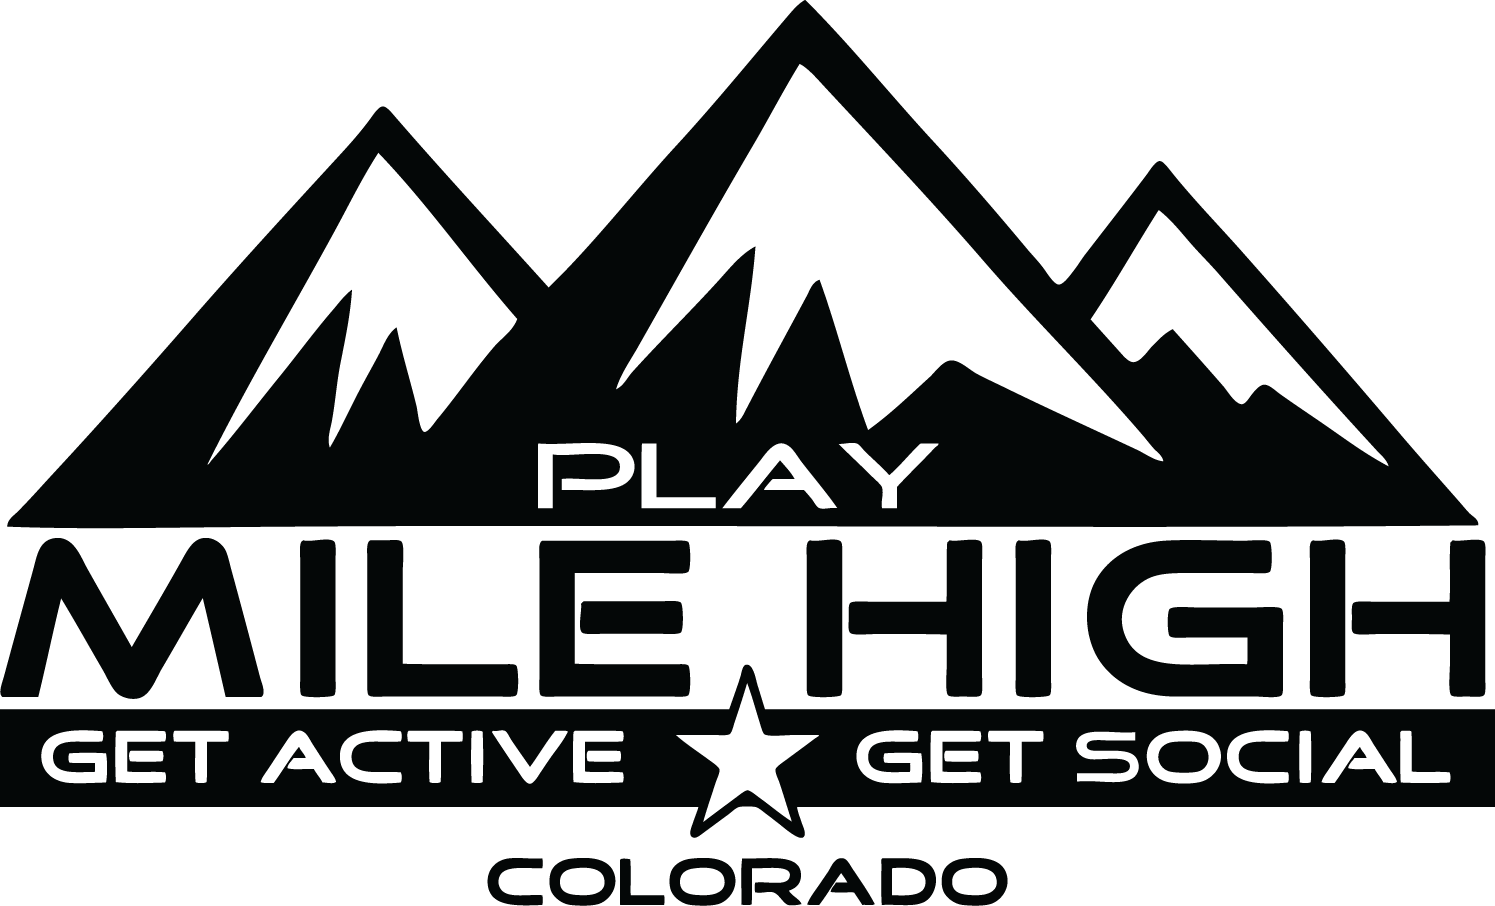 Play Mile High,  the Denver-based branch of Volo City, is Denver's top 21+ adult coed sports company providing year-round access for adults and youth to participate in a variety of sports leagues and tournaments. Participants can choose from traditional sports such as basketball and soccer to more social activities like kickball or skeeball. Learn more at  http://playmilehigh.com .